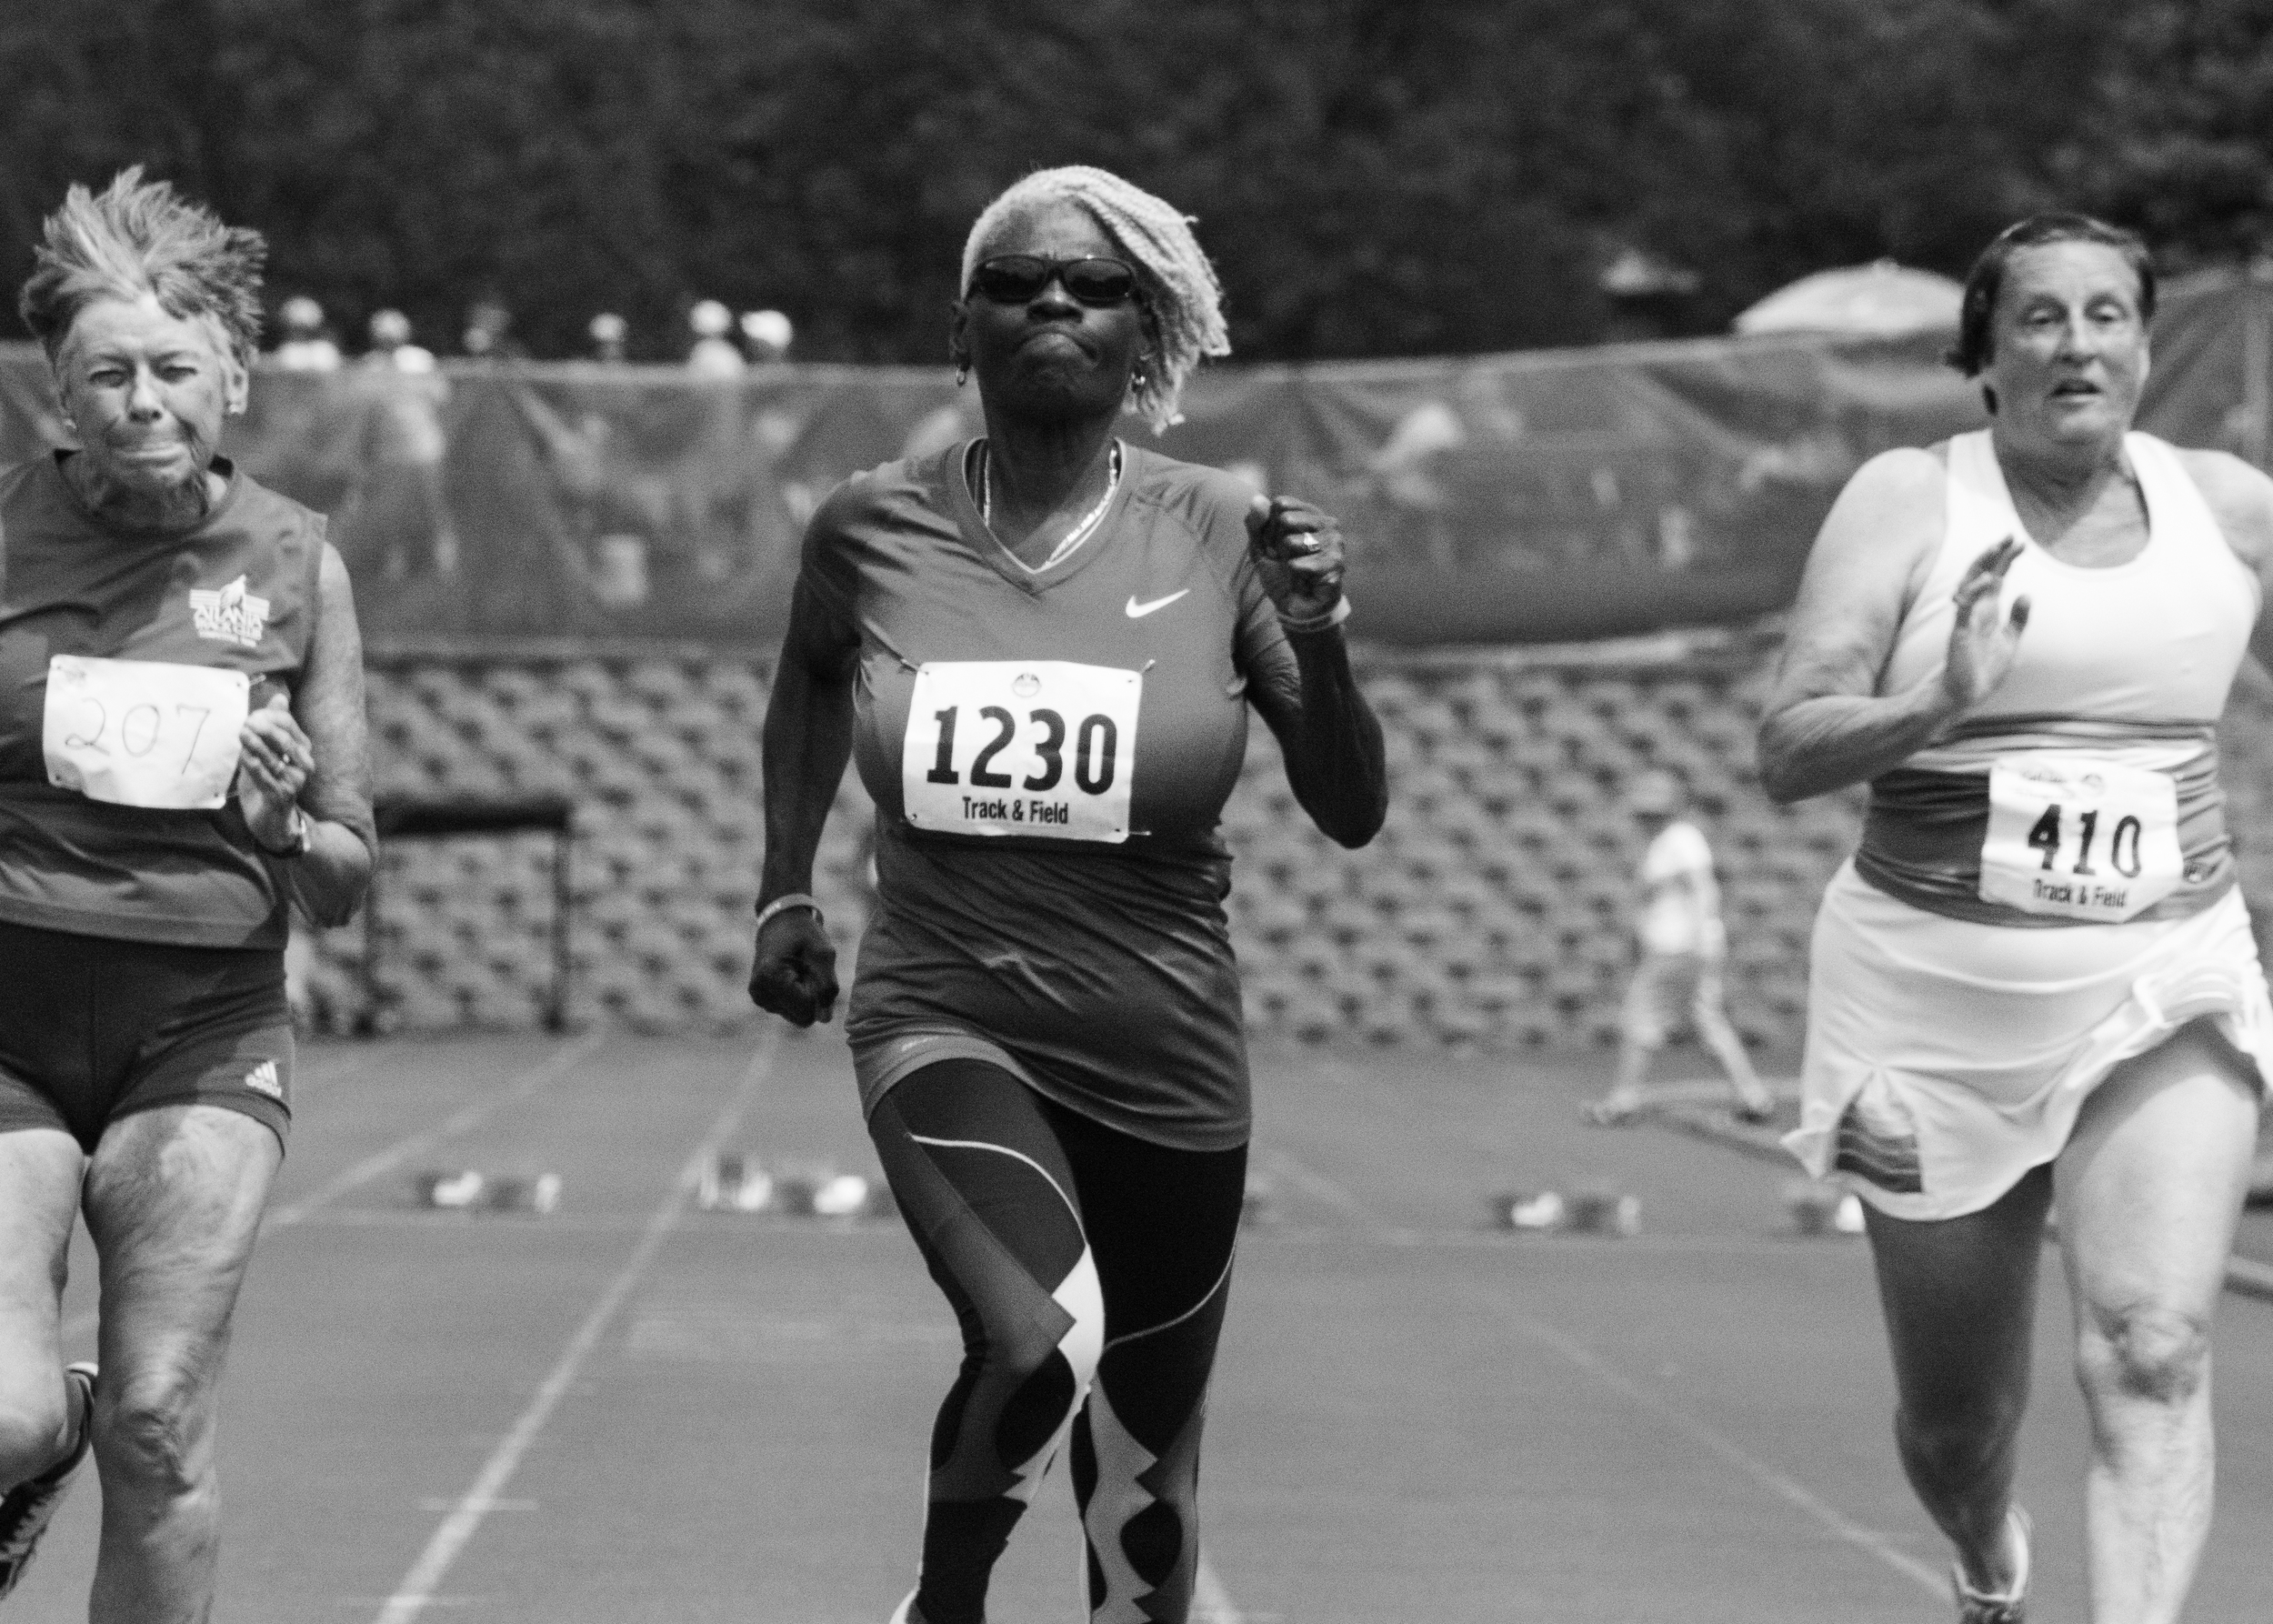 Joann Sampson, 74, 50 meters_1.jpg